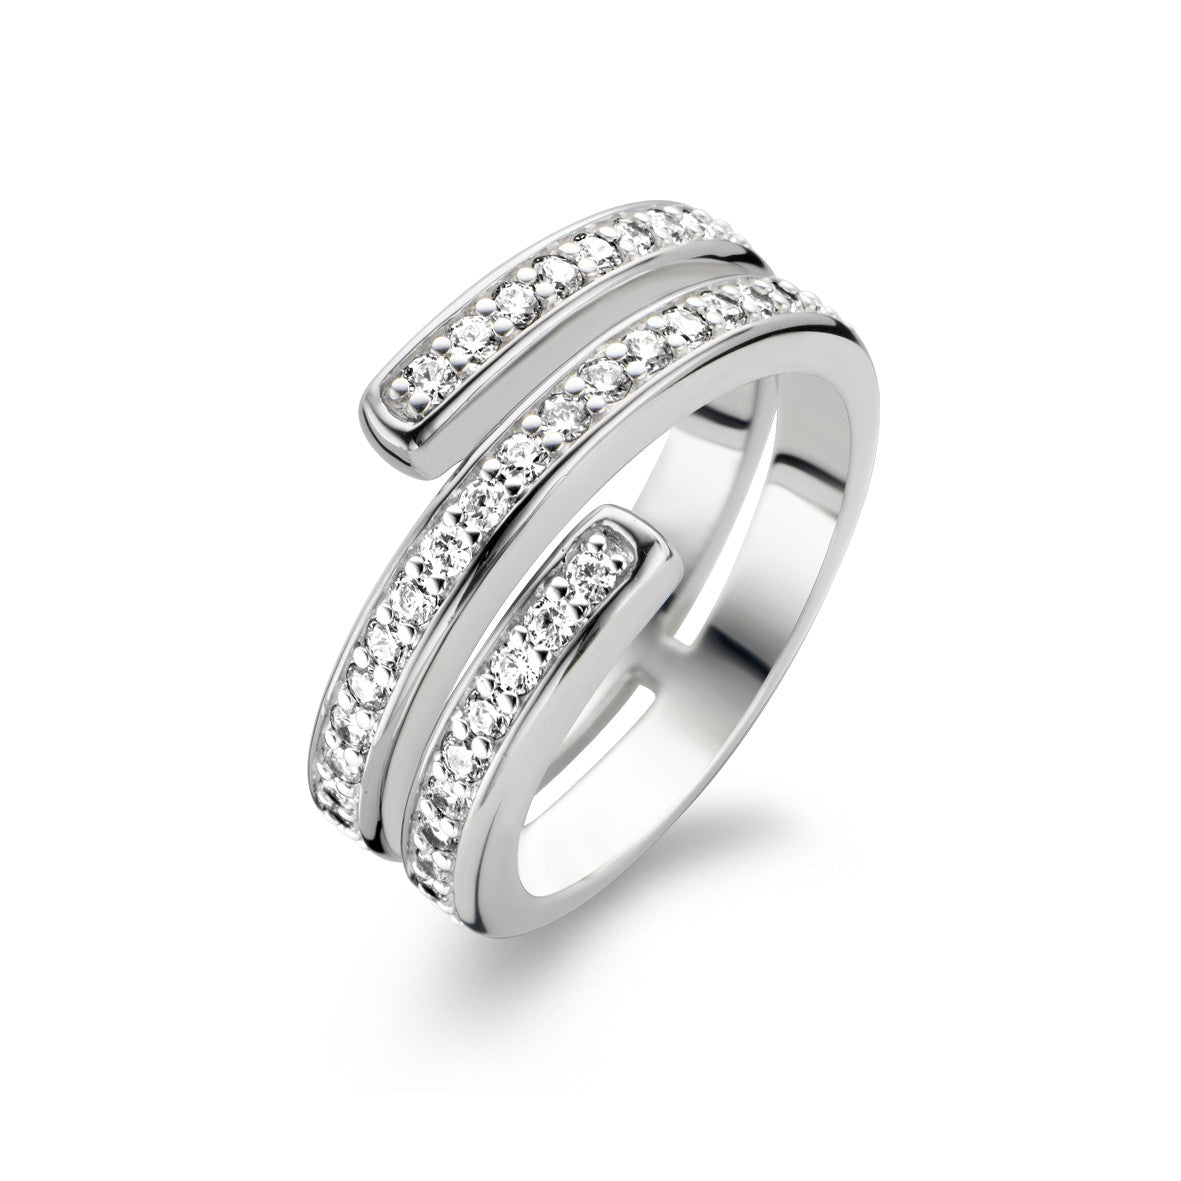 Ti Sento Ring Silver And White Cubic Zirconia Spiral